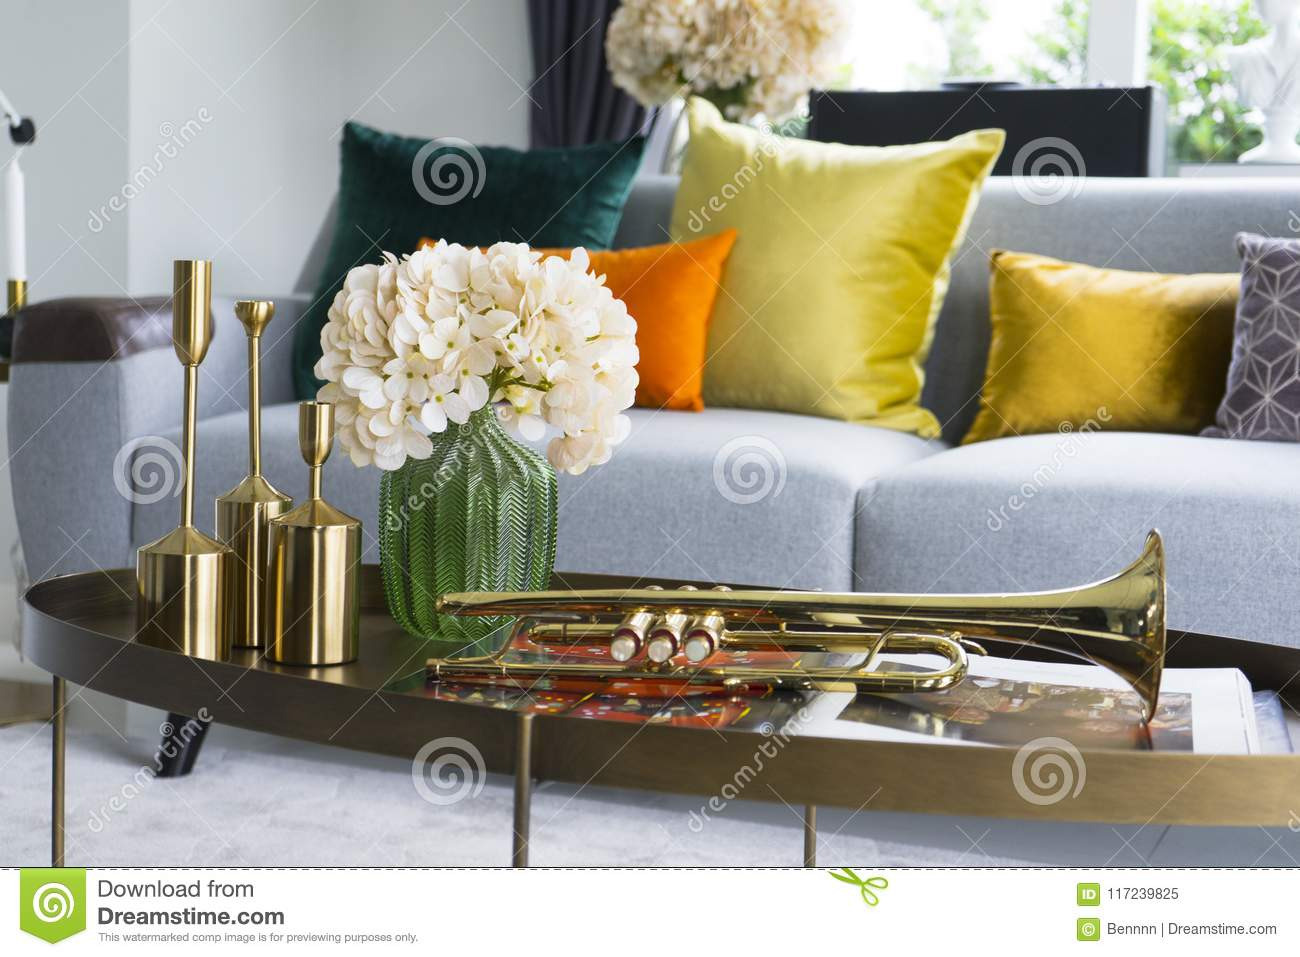 living room flower vases paint colors for with grey couch colorful and stylish vase stock image